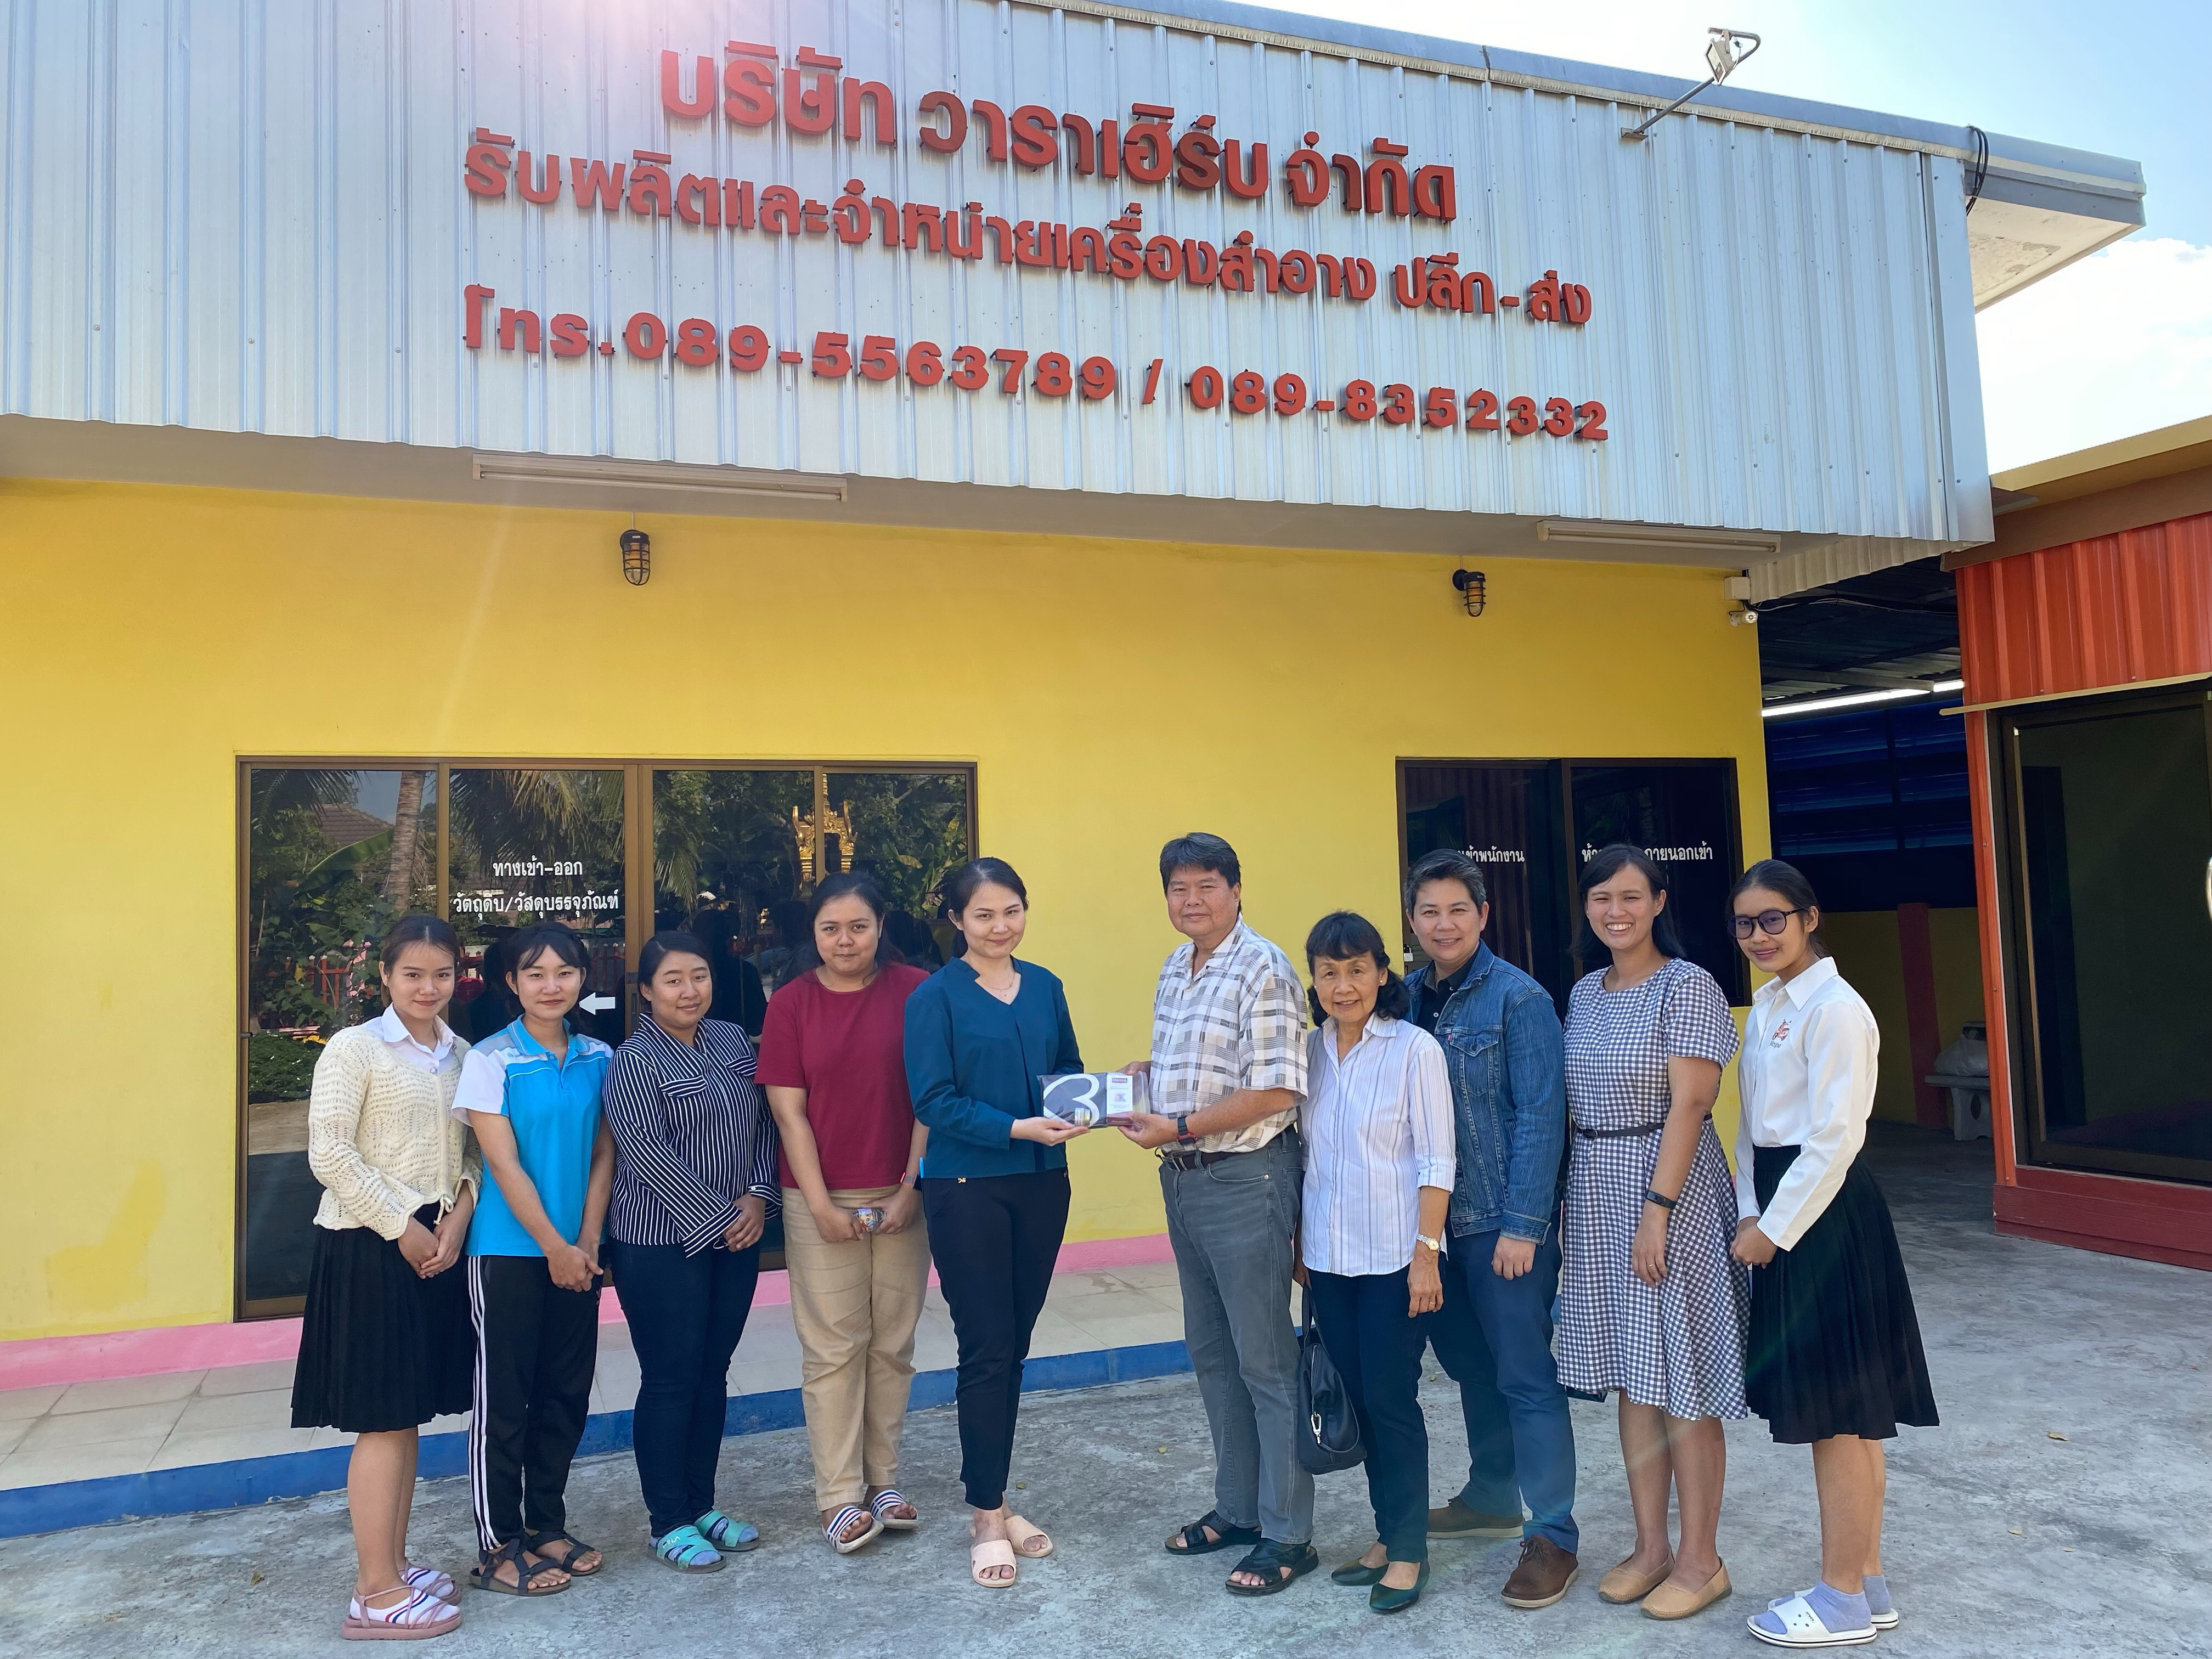 Professor Dr. Jiradej Manosroi and Professor Dr. Aranya Manosroi together with the staffs from Division of Cosmetic Technology, North – Chiang Mai University have visited the job training of the undergraduate students at Waraherb Co., LTD., Chiang Mai.